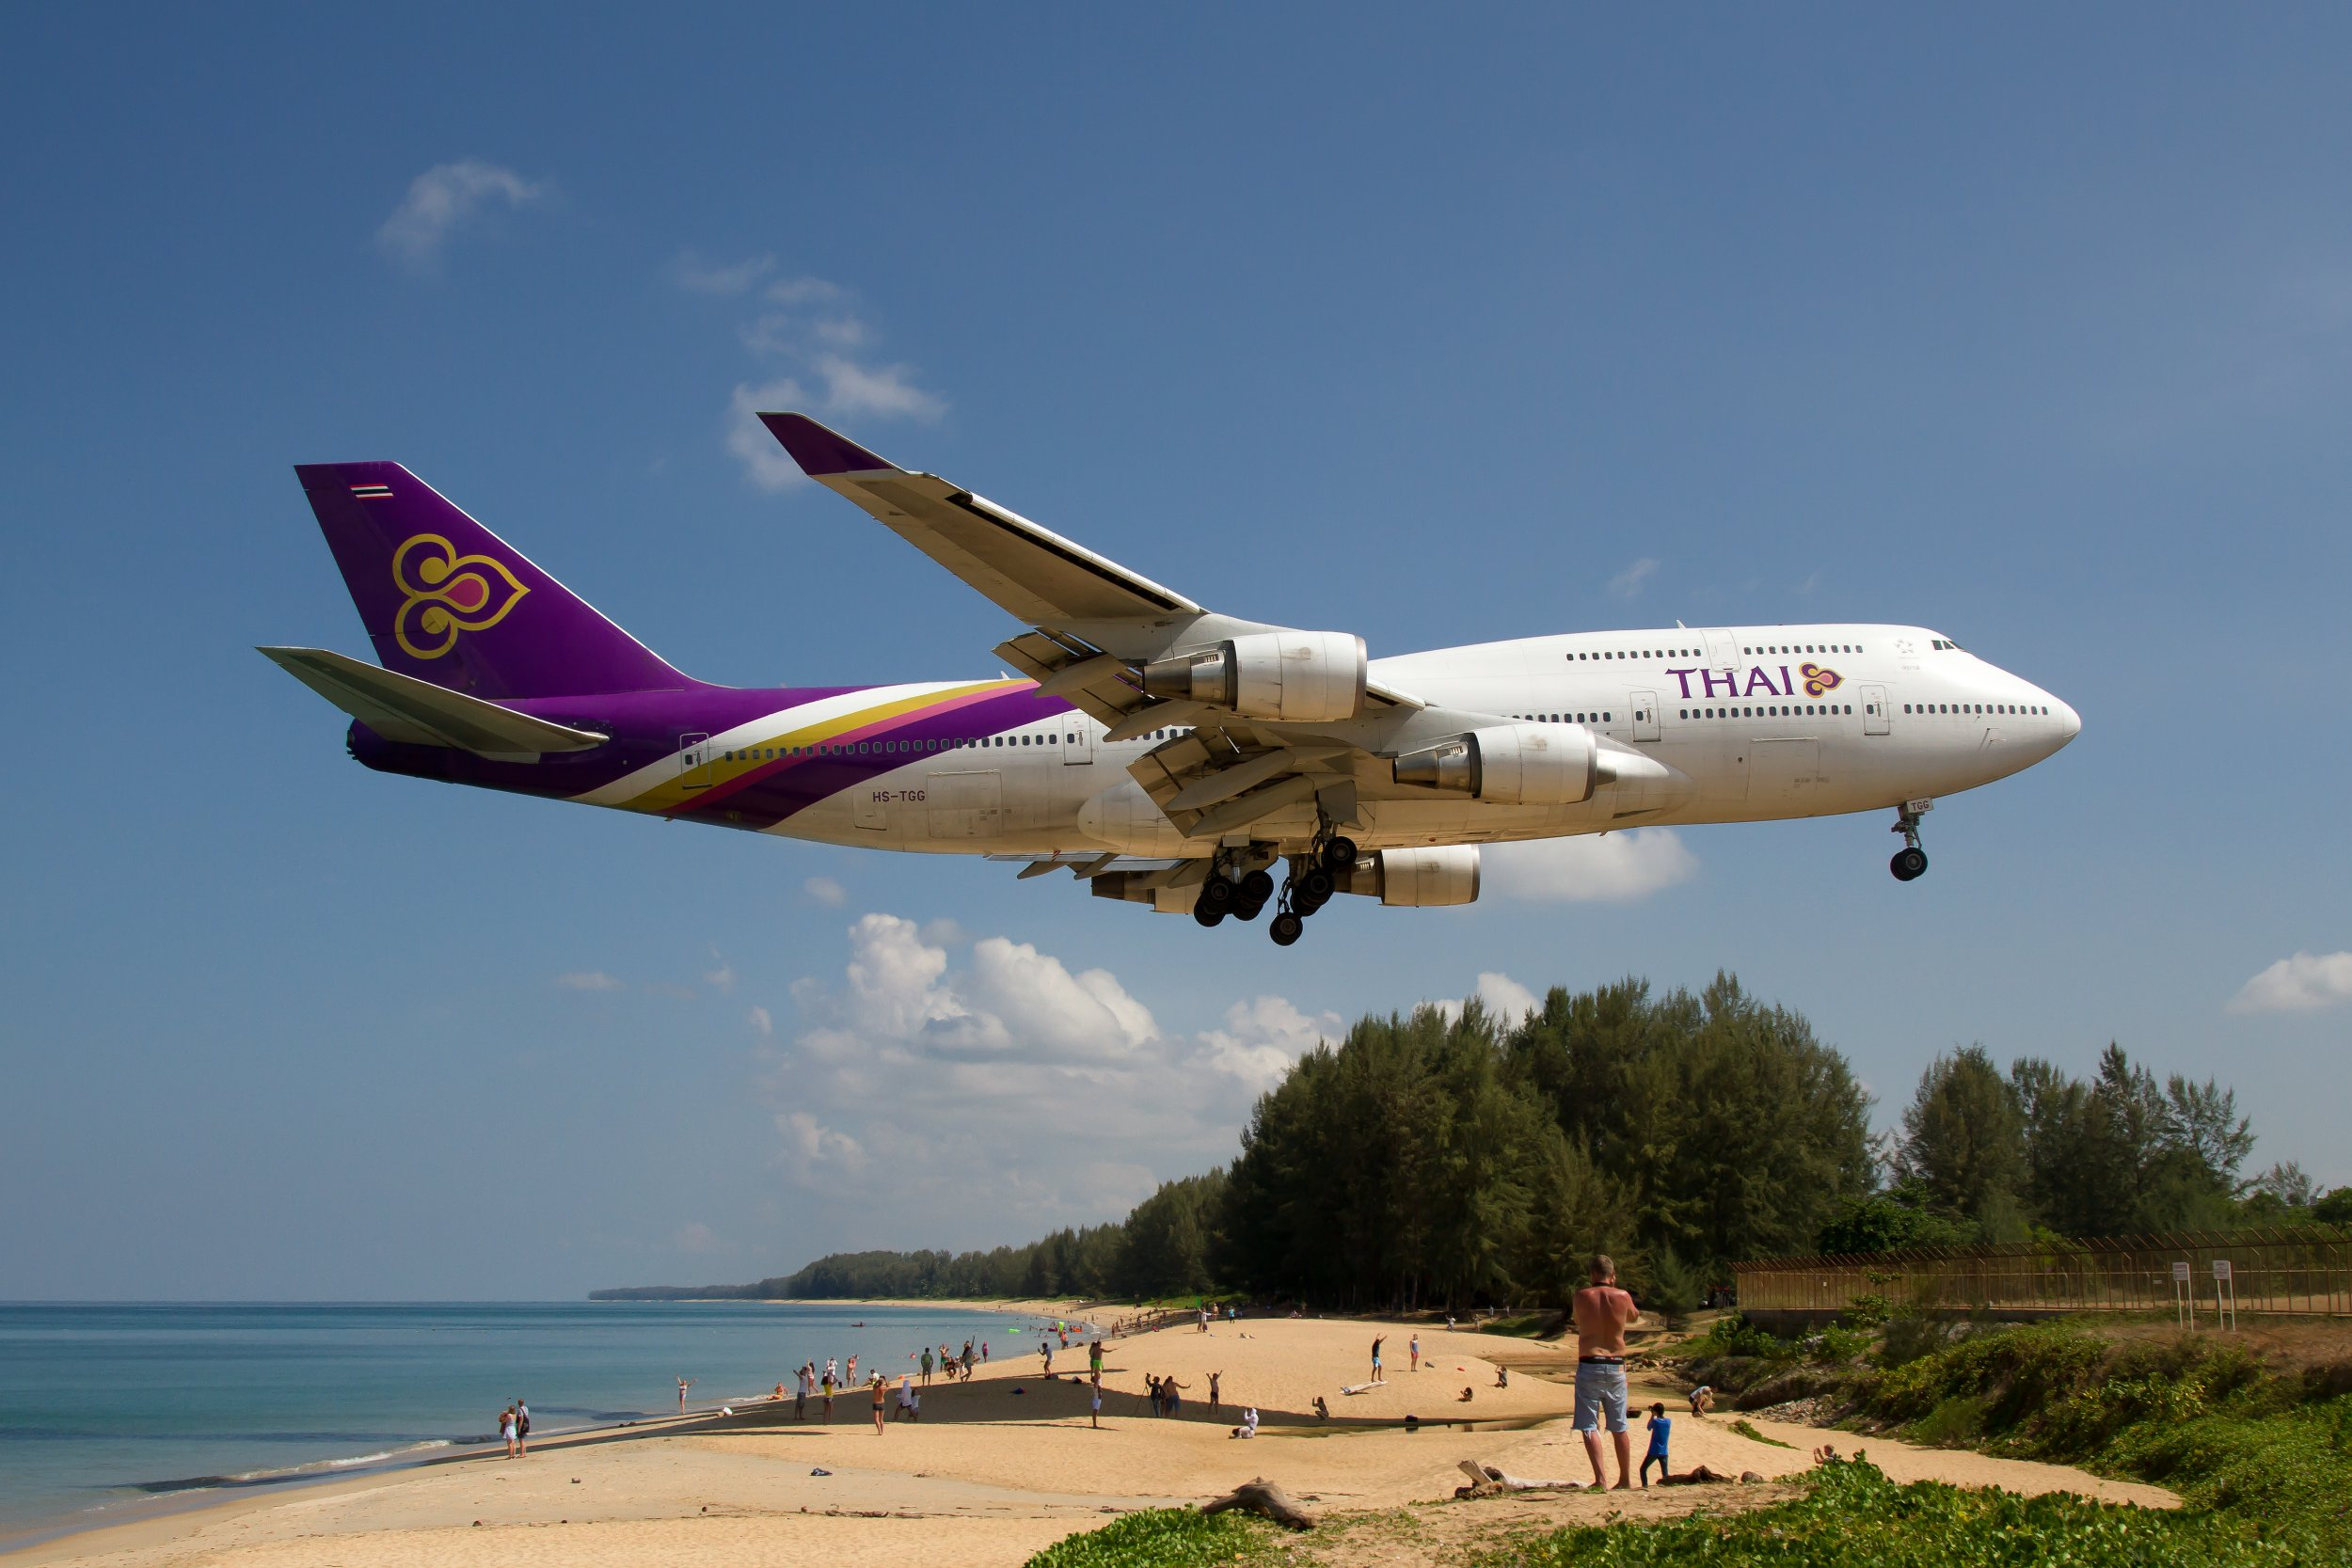 MAI KHAO BEACH, PHUKET, THAILAND - 2018/03/20: Thai Airways Boeing 747-400 about to complete a domestic flight from Bangkok and landing at Phuket over Mai Khao beach. (Photo by Fabrizio Gandolfo/SOPA Images/LightRocket via Getty Images)